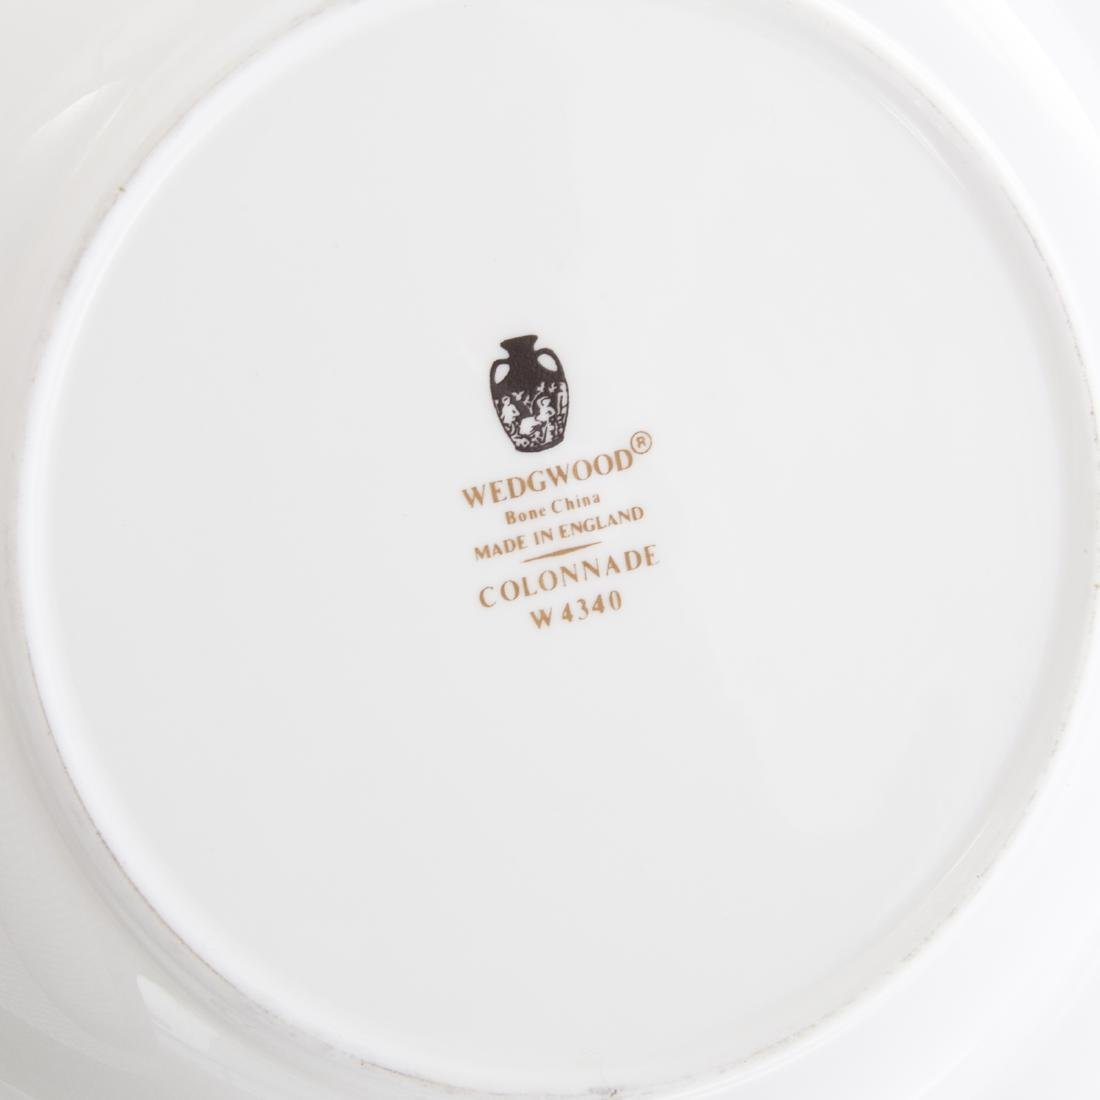 Wedgwood china partial dinner service - 3